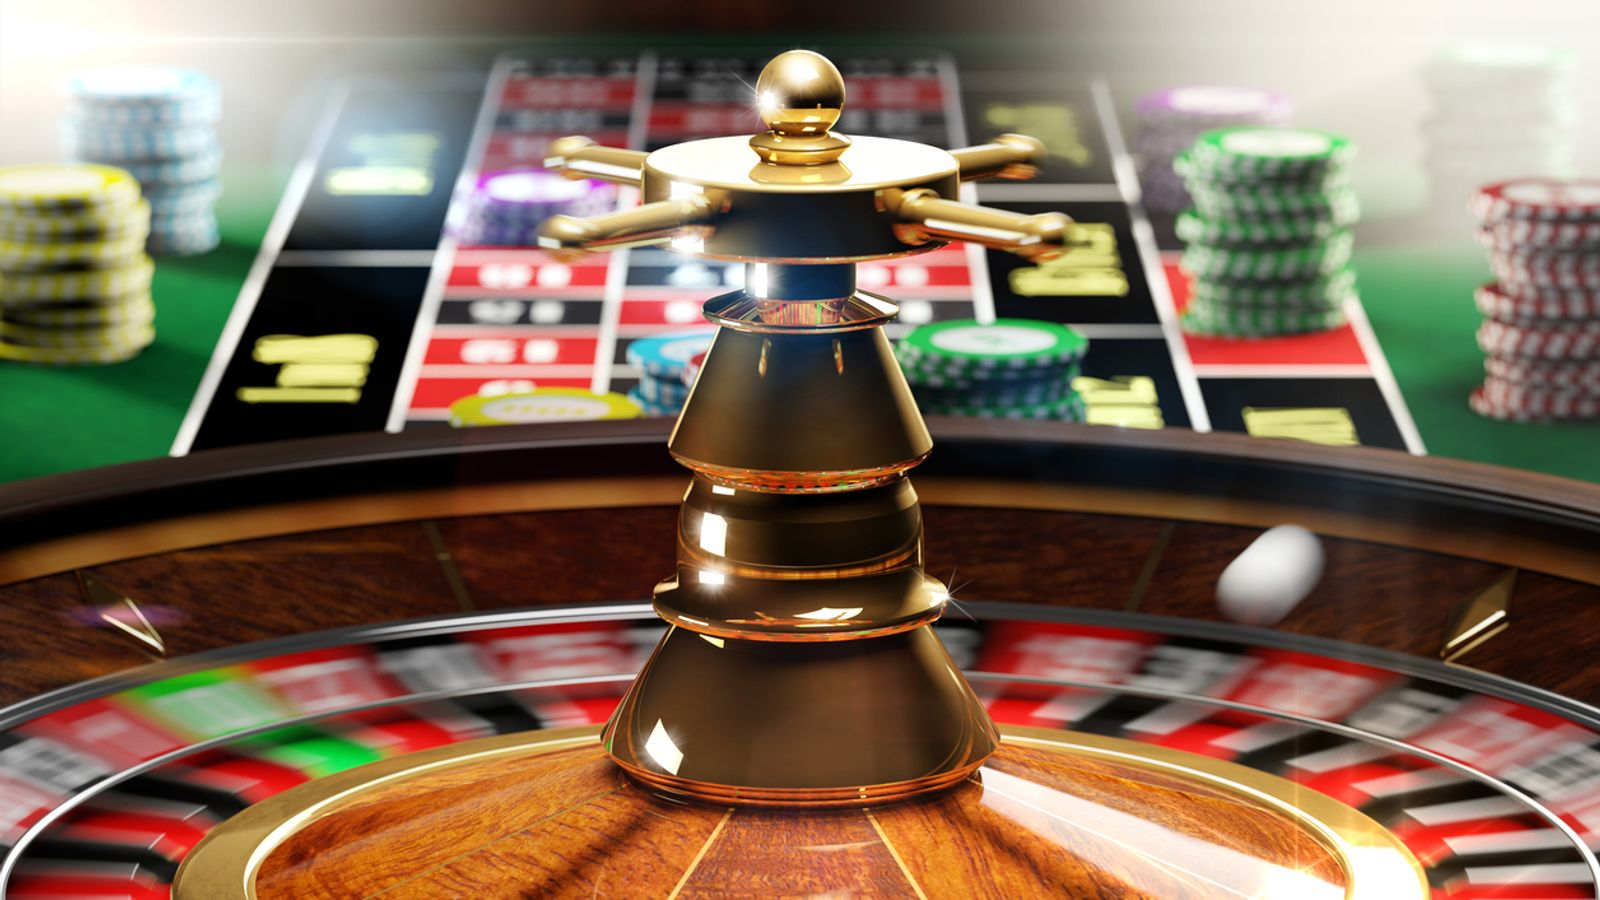 William Hill gambling company Mr Green fined £3m | Business News | Sky News